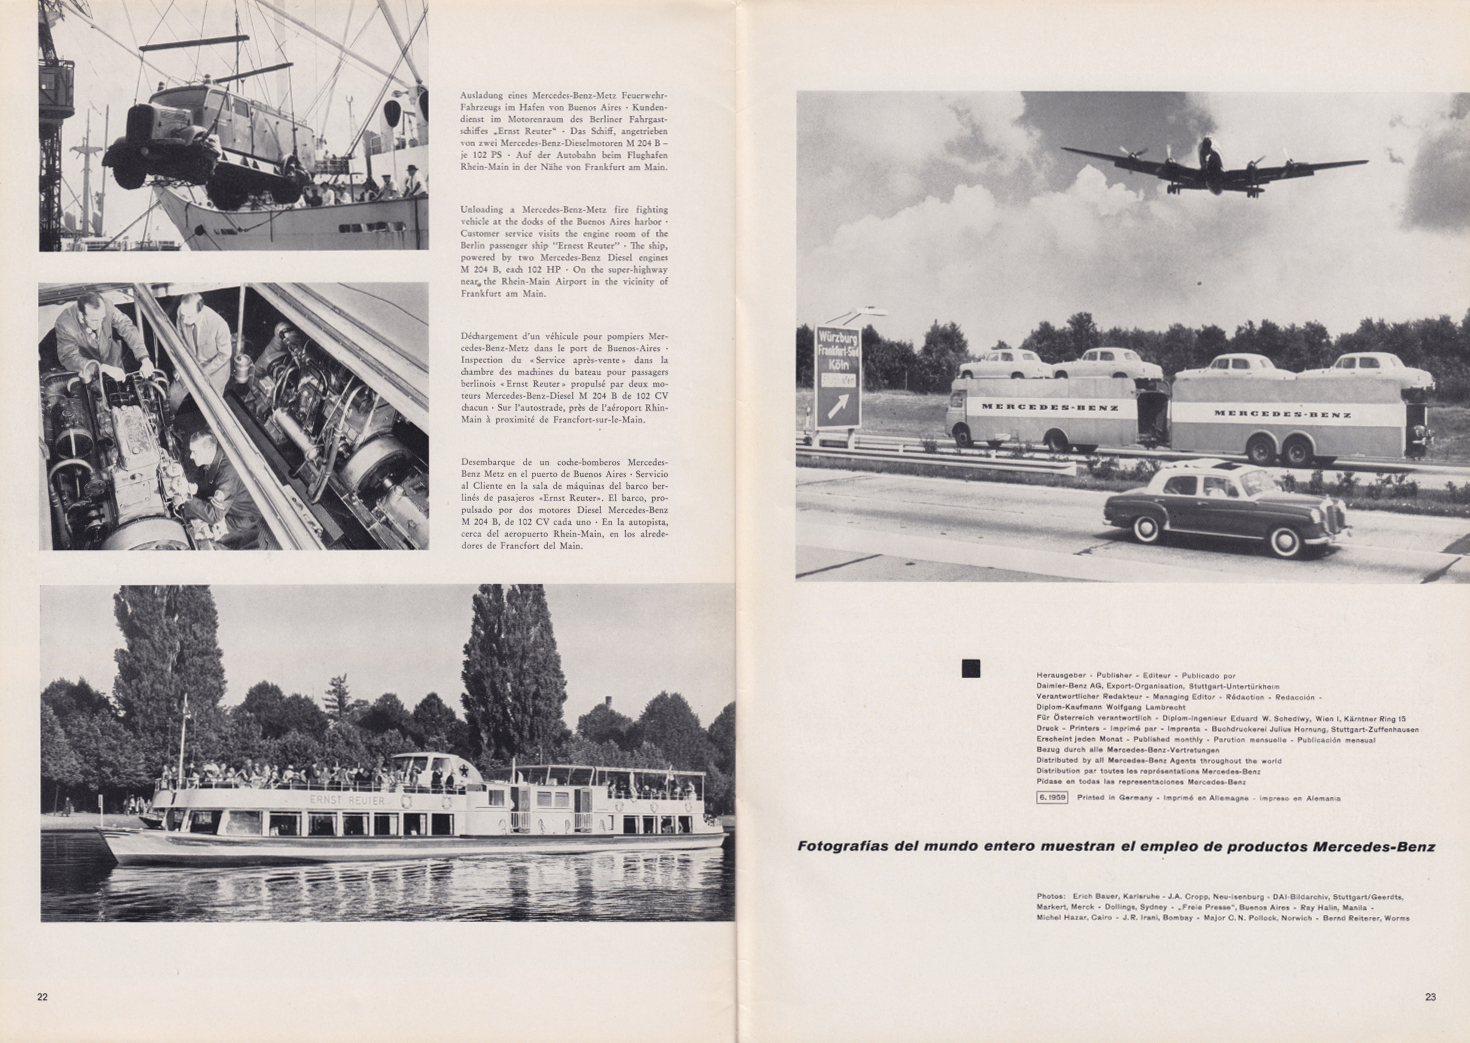 (REVISTA): Periódico In aller welt n.º 32 - Mercedes-Benz no mundo - 1959 - multilingue 012